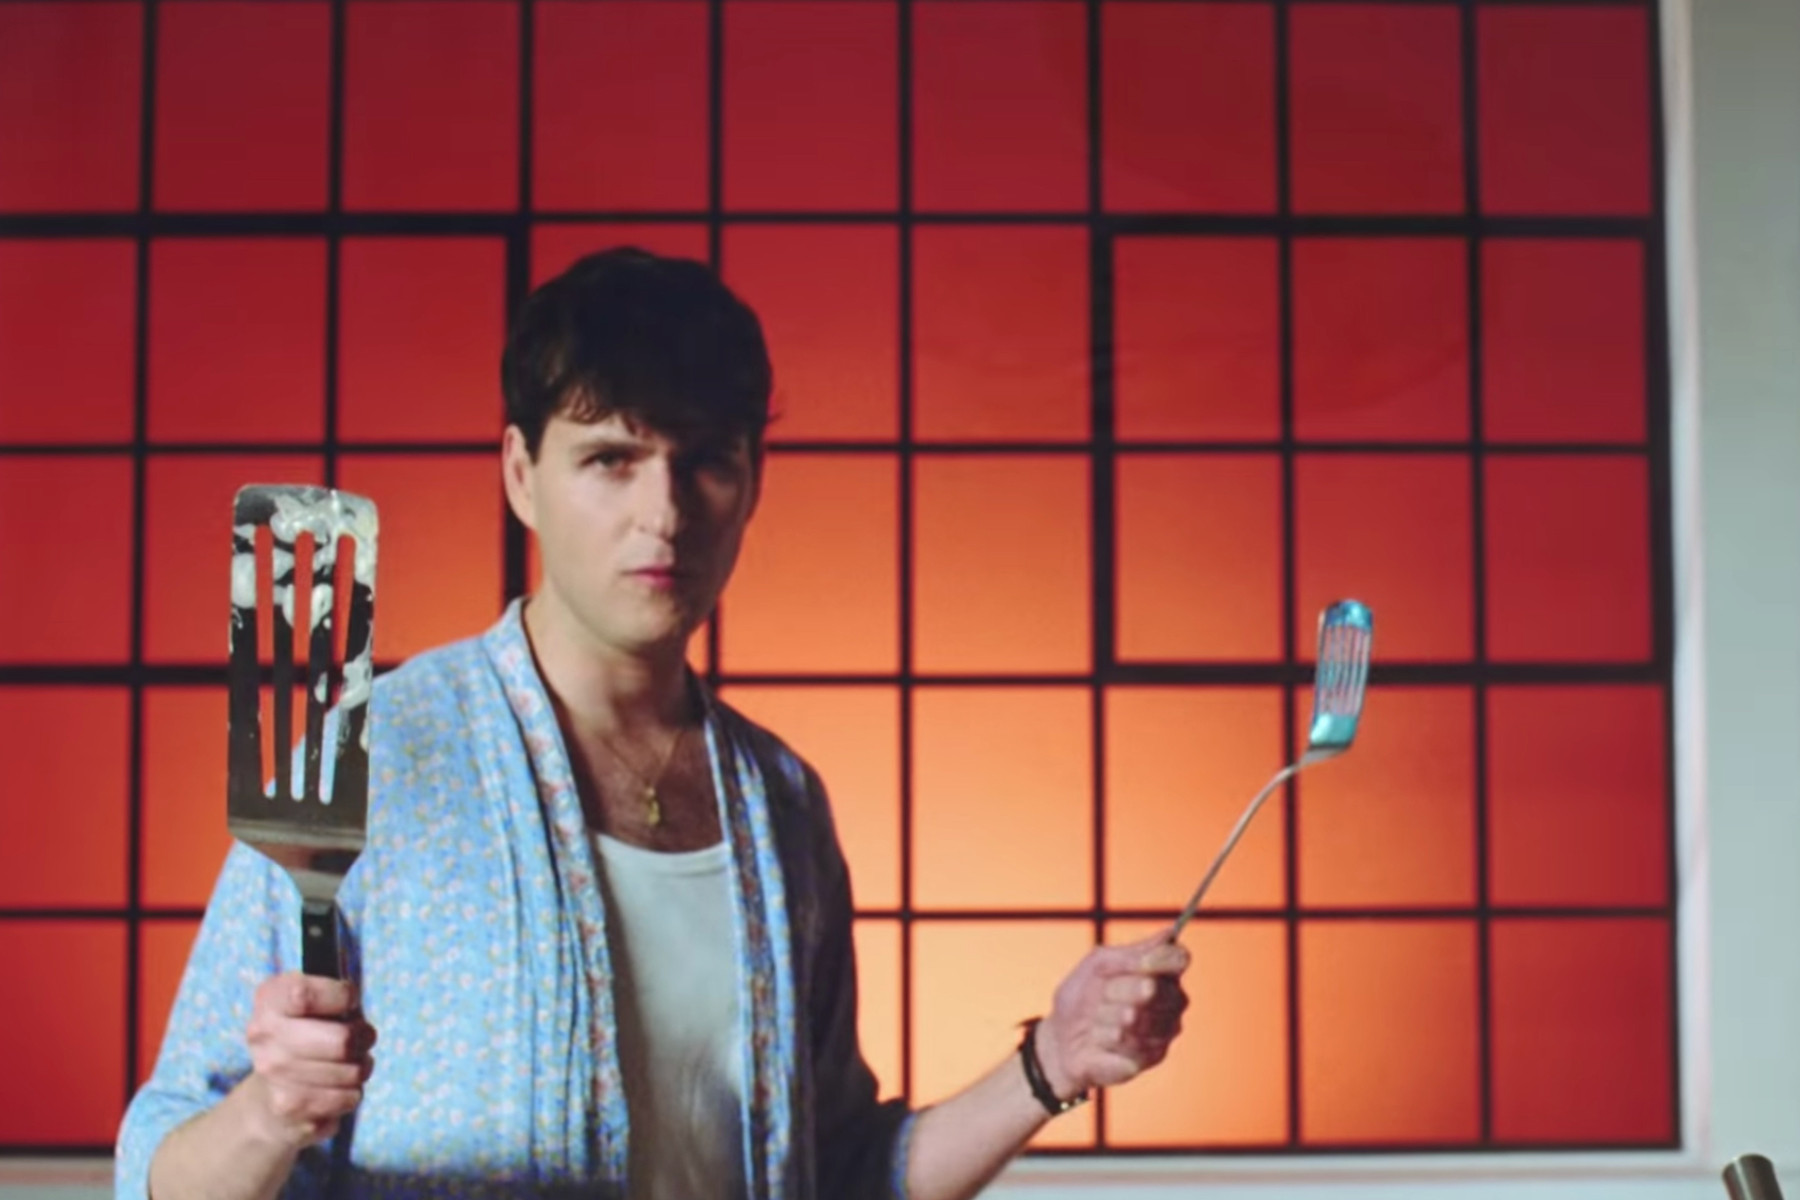 Vampire Weekend Kembali Hadirkan Double Single, 'Sunflower' & 'Big Blue'